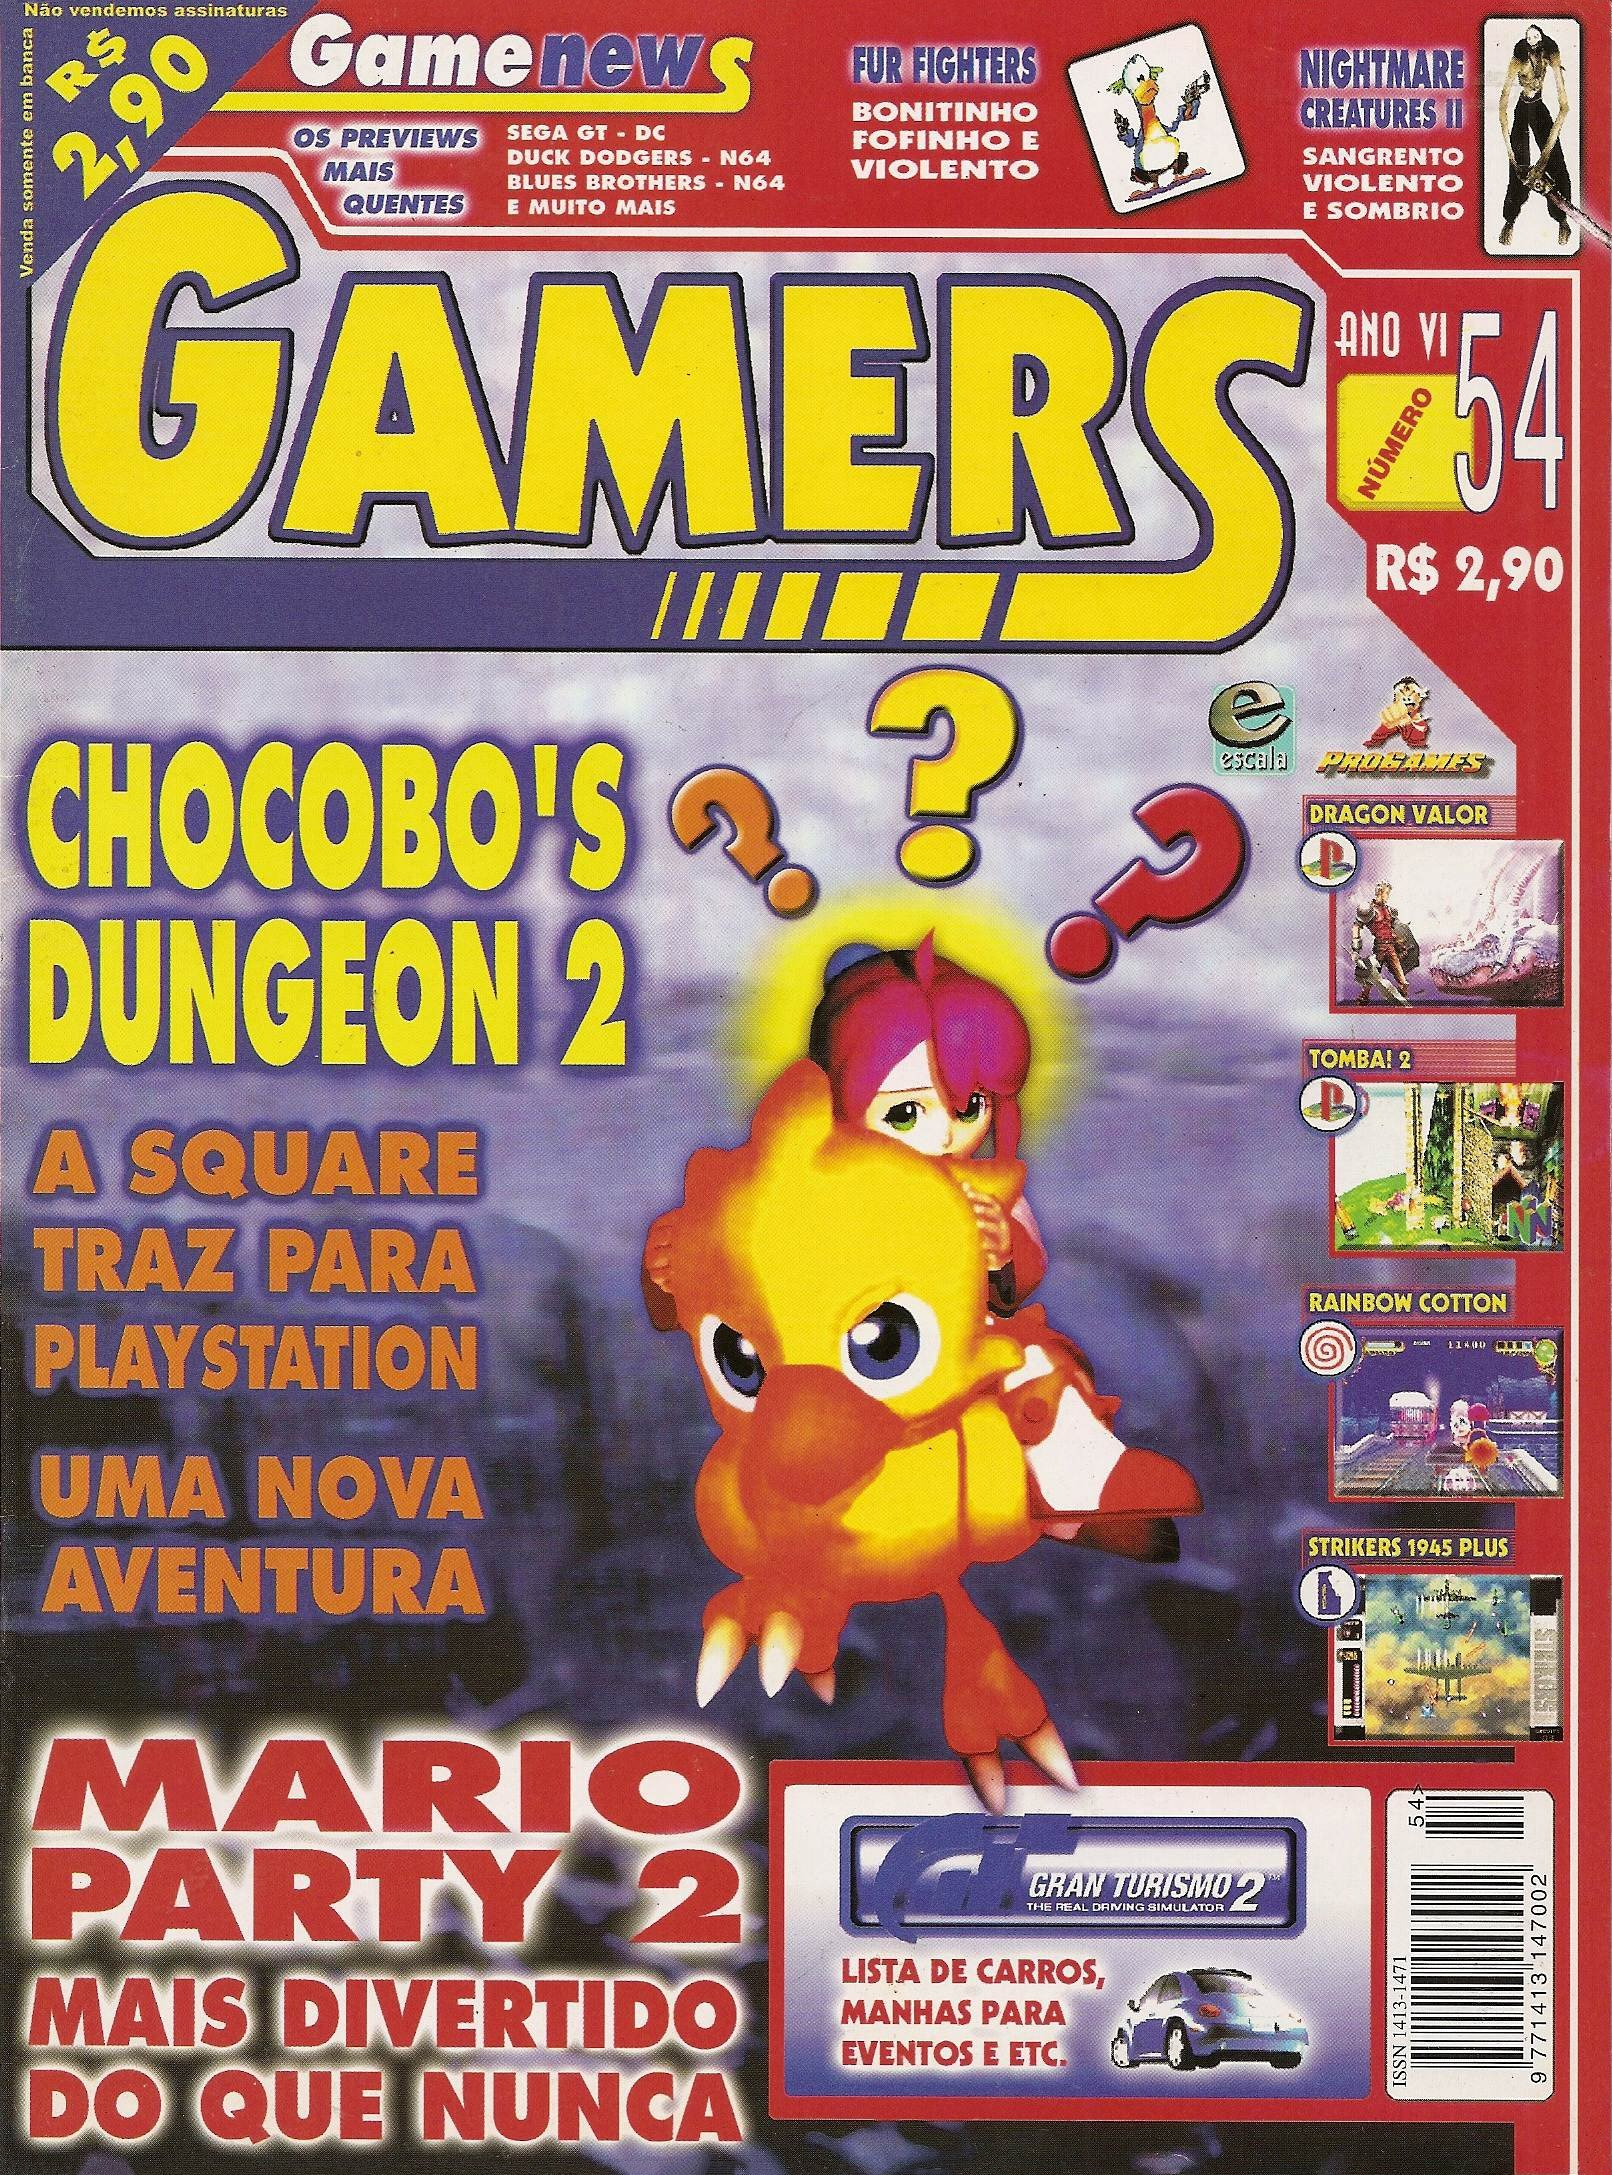 Gamers Issue 54 (2000)